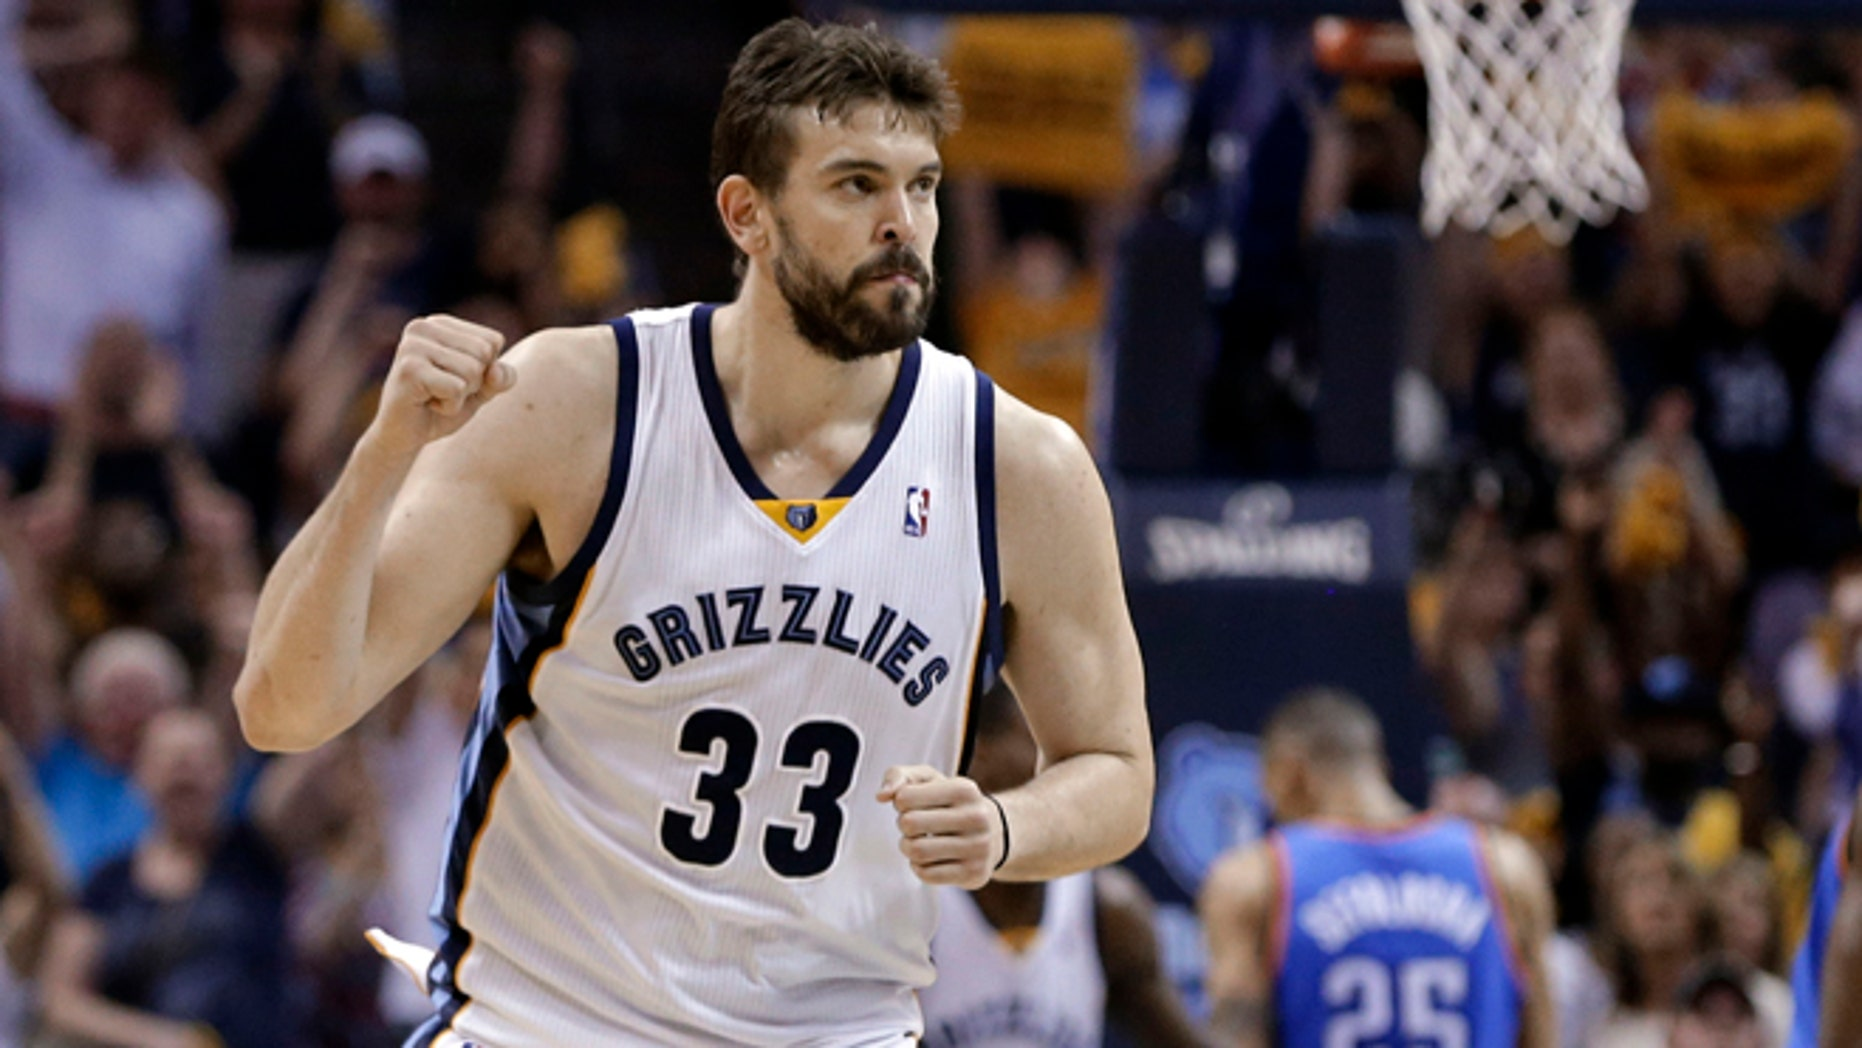 FILE - In this April 24, 2014, file photo, Memphis Grizzlies center Marc Gasol celebrates after scoring against the Oklahoma City Thunder in overtime of Game 3 of an opening-round NBA basketball playoff series in Memphis, Tenn. Marc Gasol has confirmed that he will sign a new five-year contract with the Memphis Grizzlies. The 30-year-old free agent tells Spanish media he will stay at Memphis, as The Associated Press reported on Monday, July 6, 2015. The deal is expected to be worth more than 100 million dollars. (AP Photo/Mark Humphrey, File)